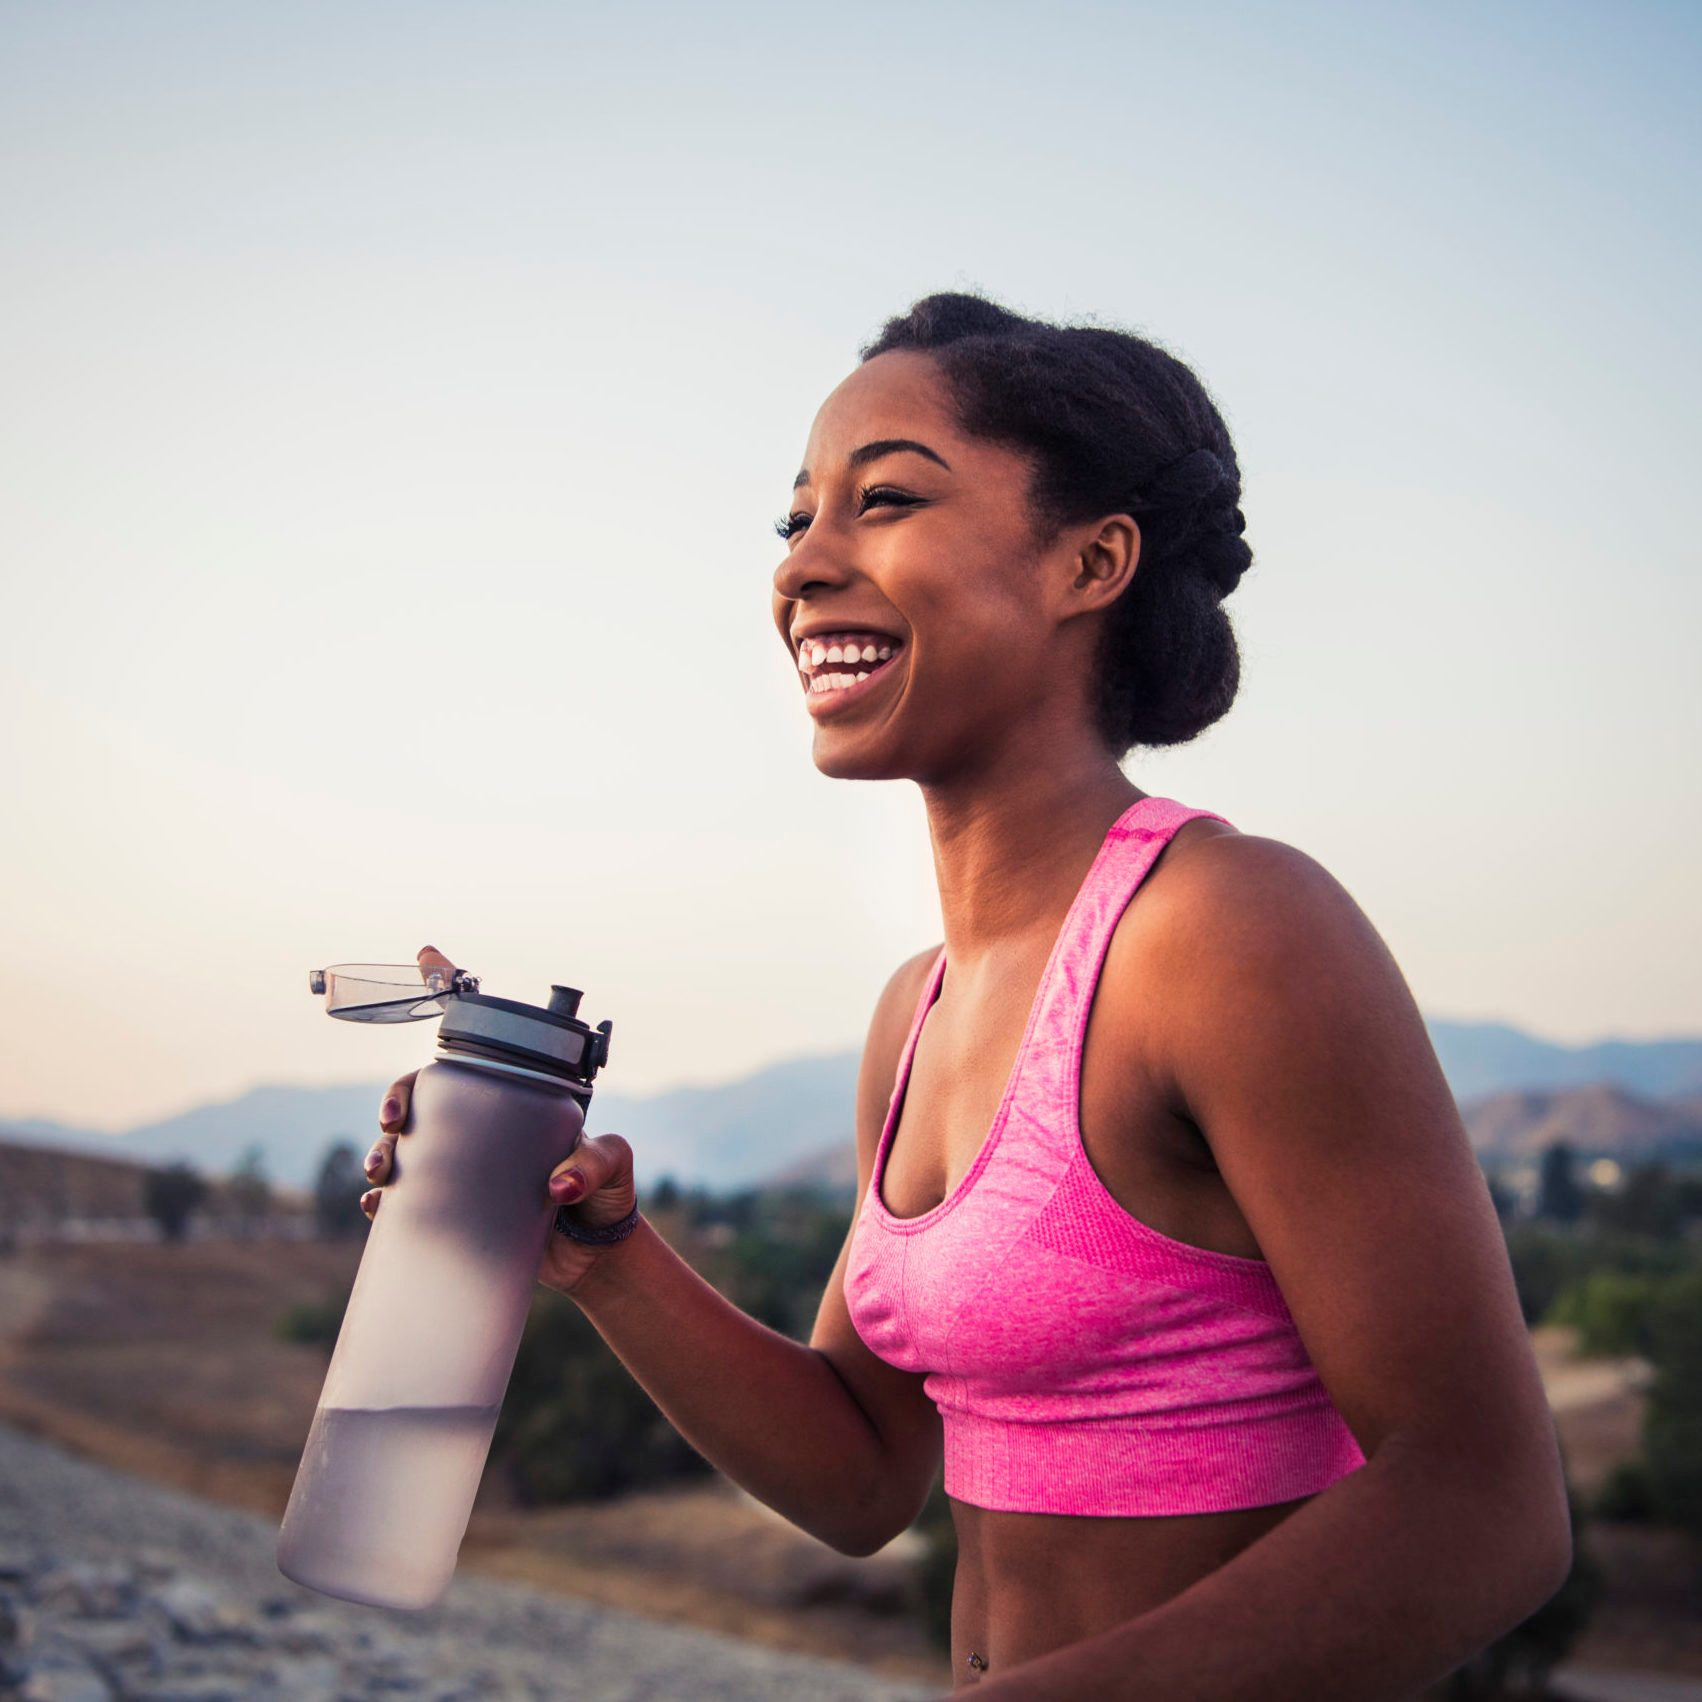 smiling female runner holding water bottle